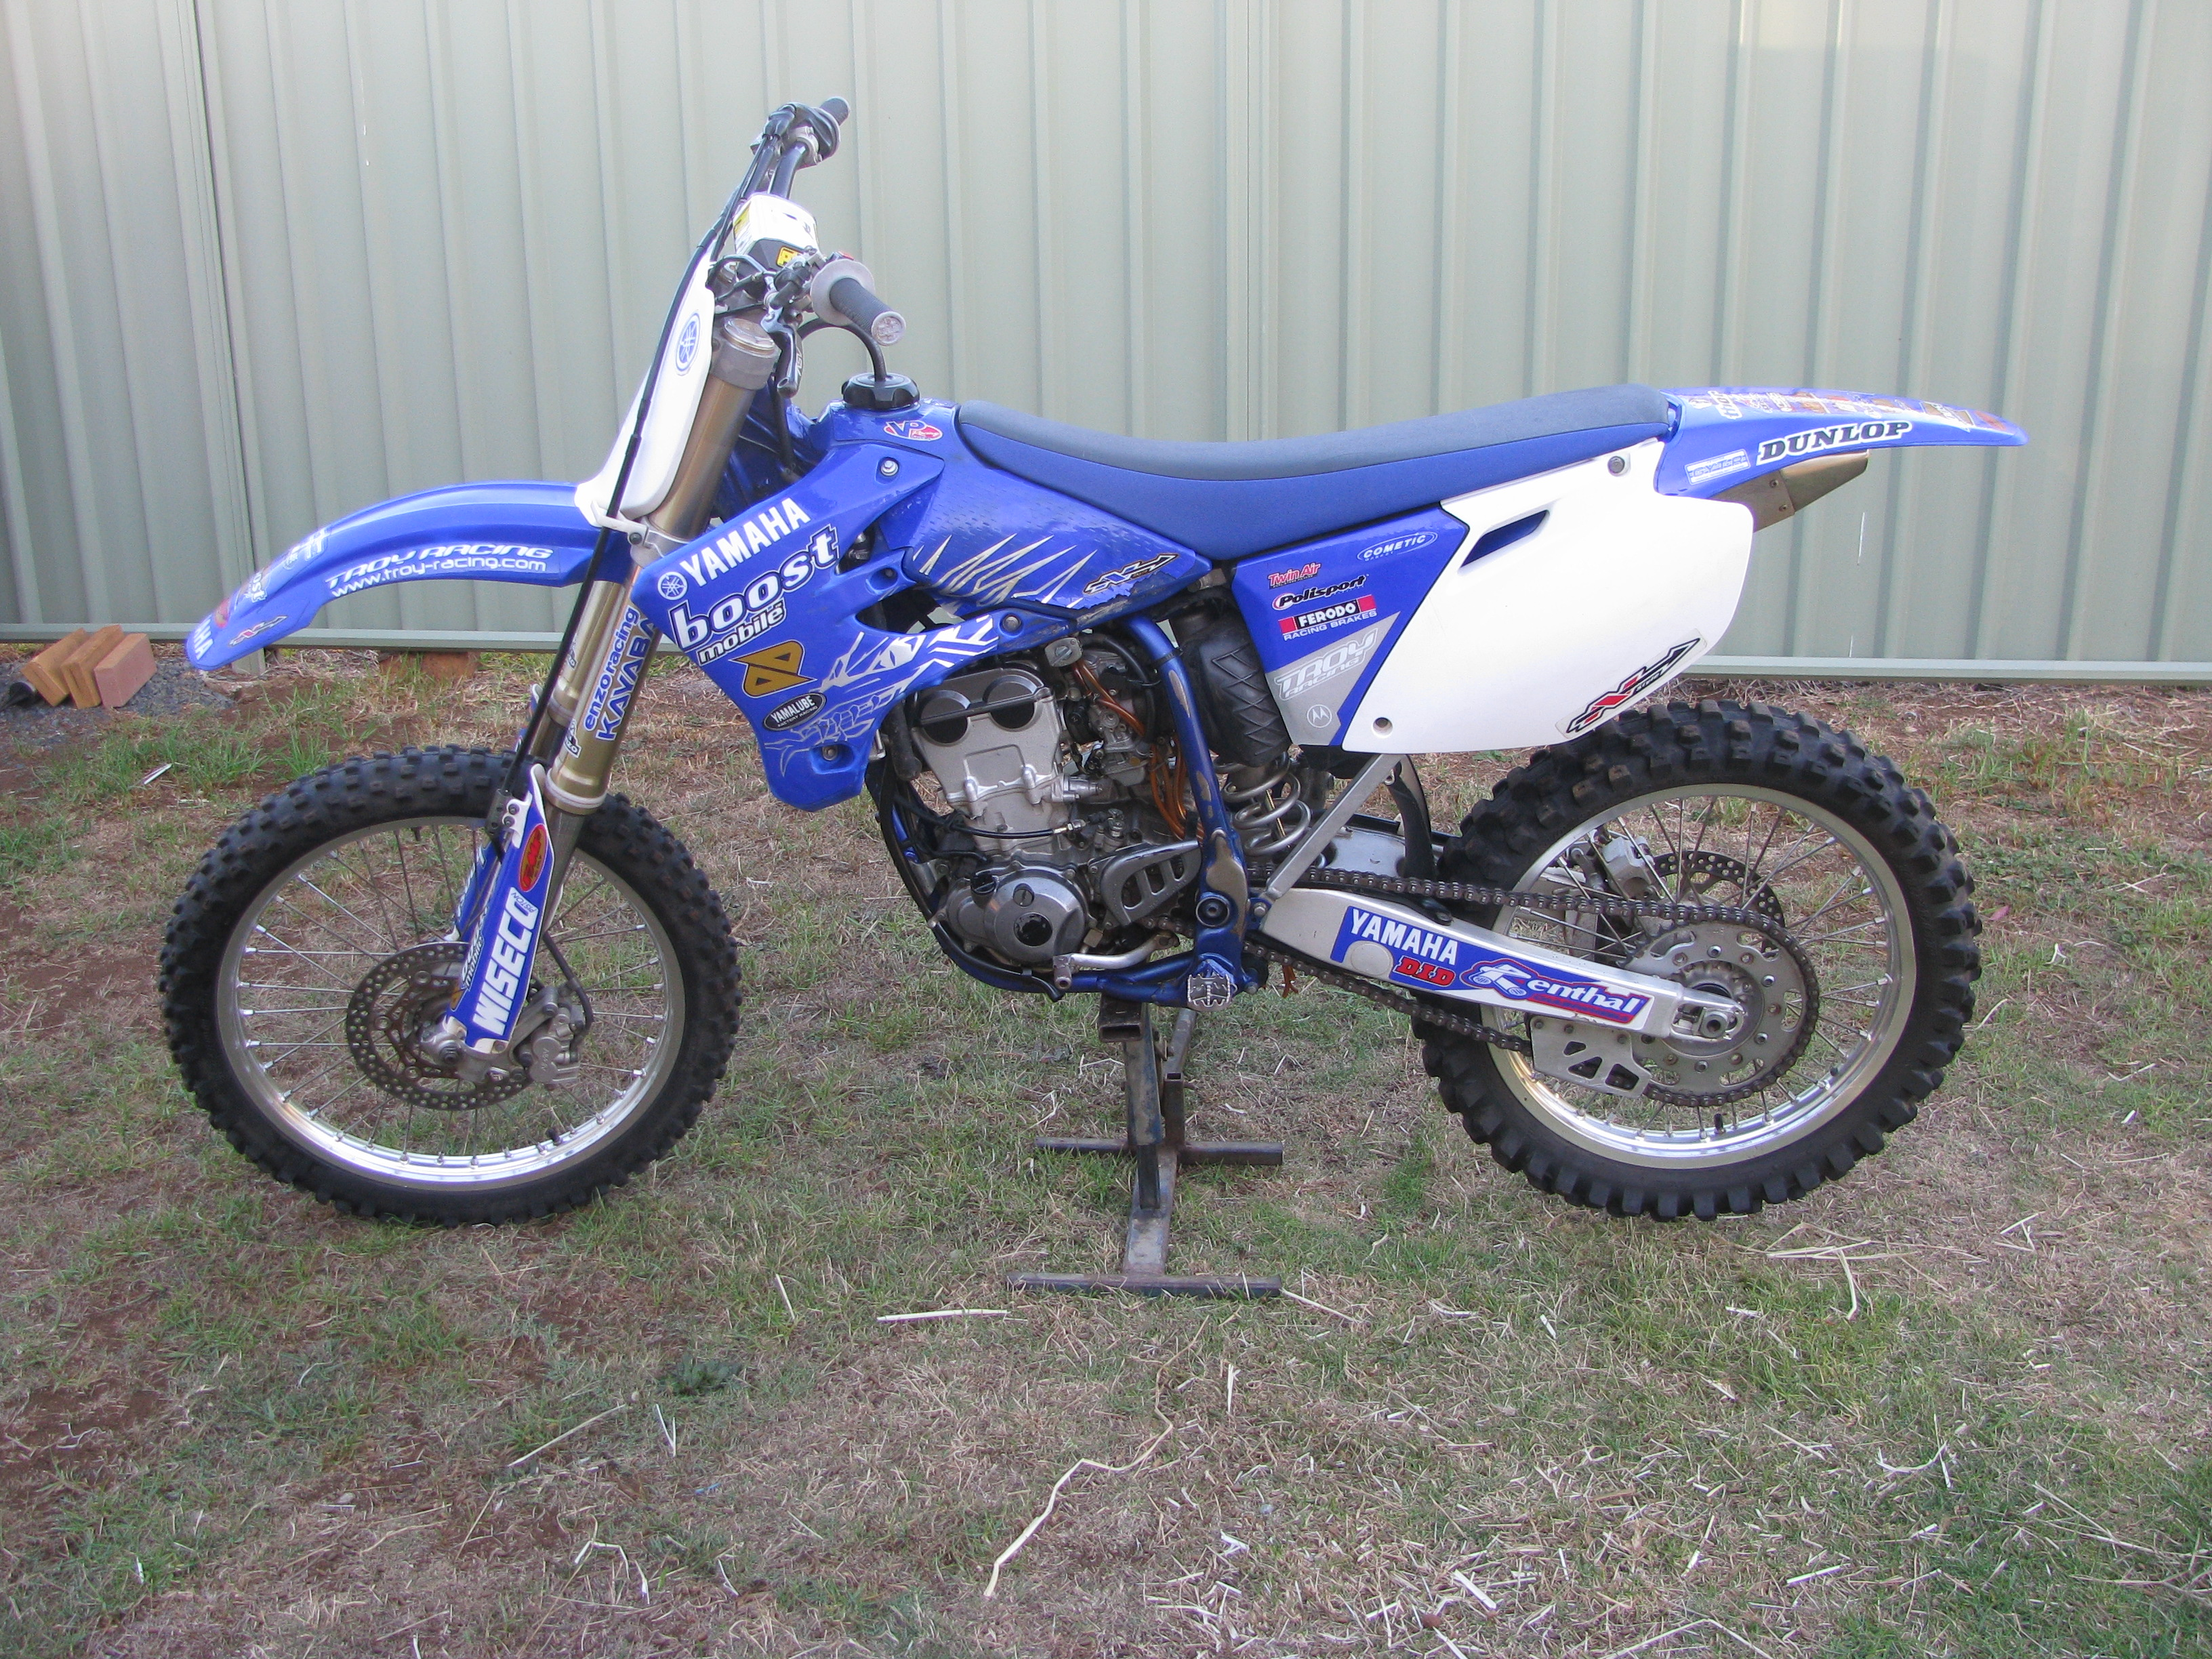 2005 yamaha yz250f for sale qld darling downs for Yamaha yz250f for sale